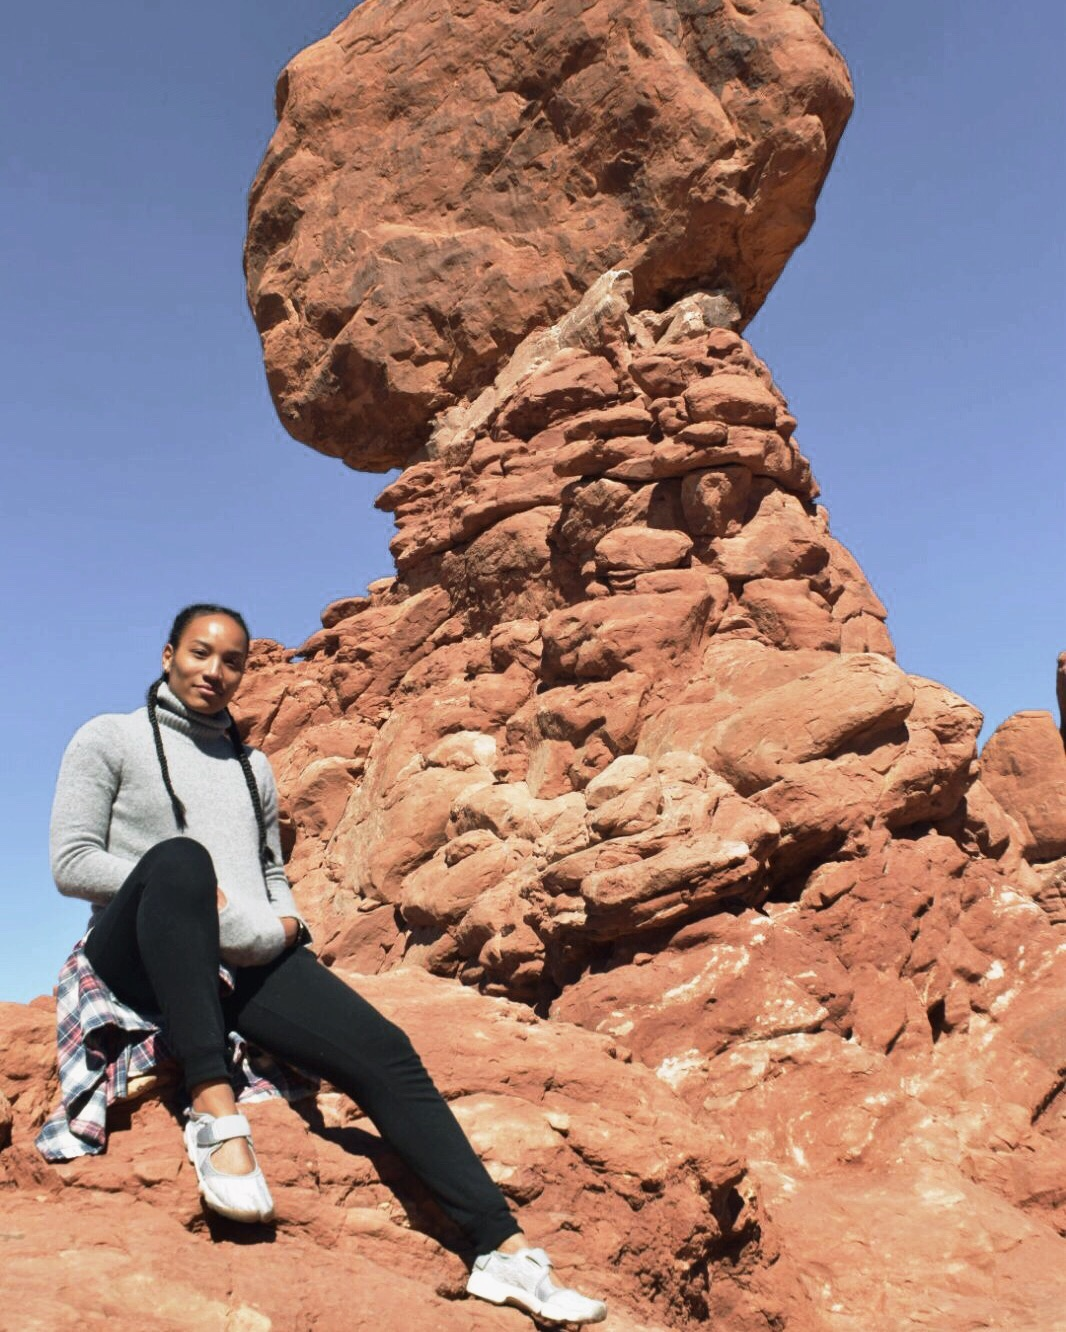 Illustrated by Sade - woman taking a photo in front of Balancing Rock in Arches National Park, Utah